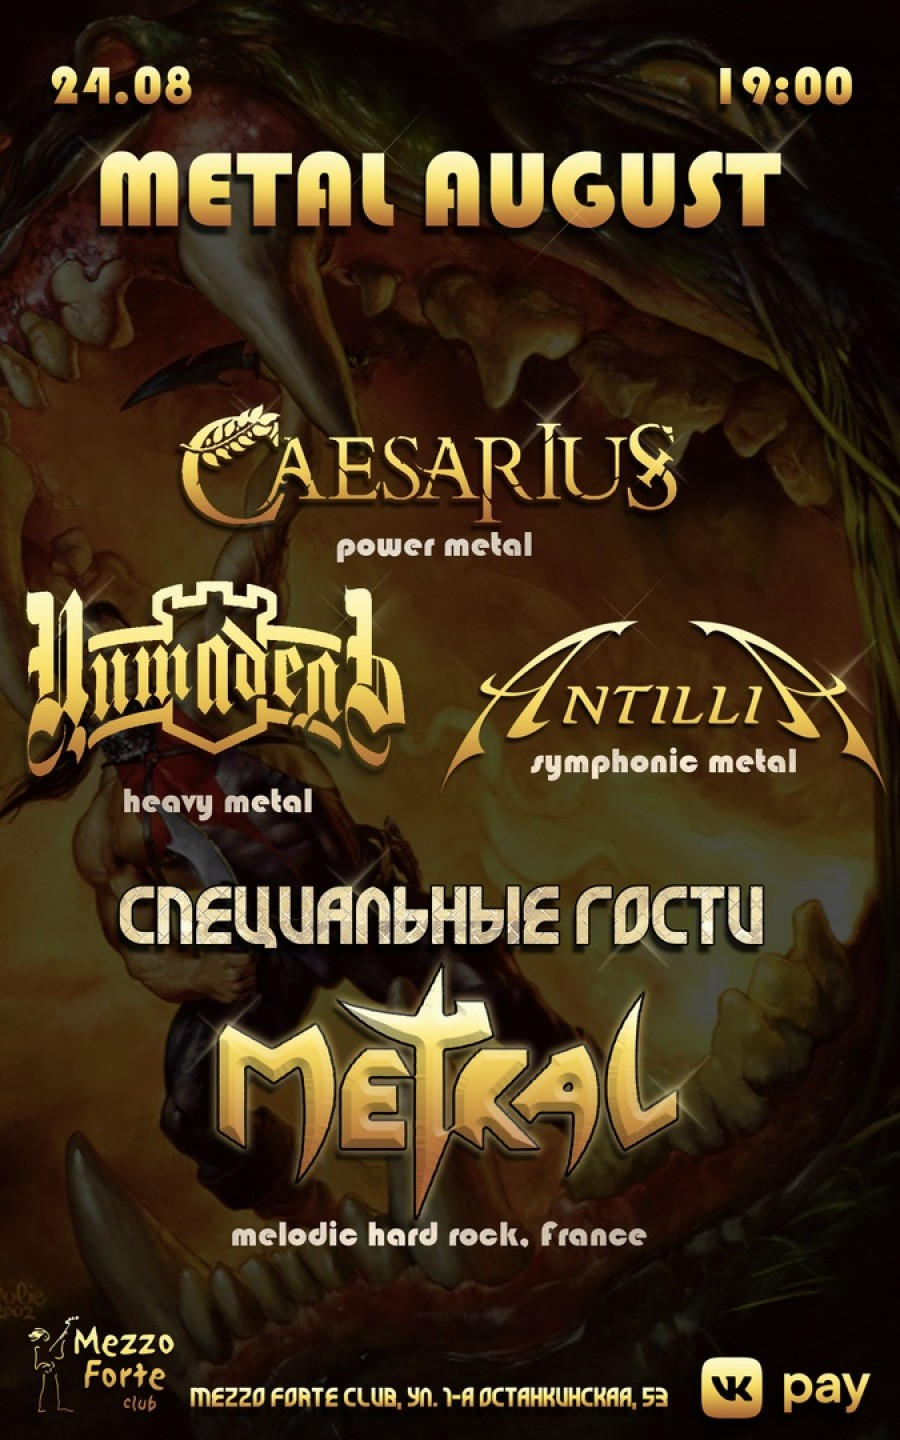 24.08.19 – METAL AUGUST – Mezzo Forte Club